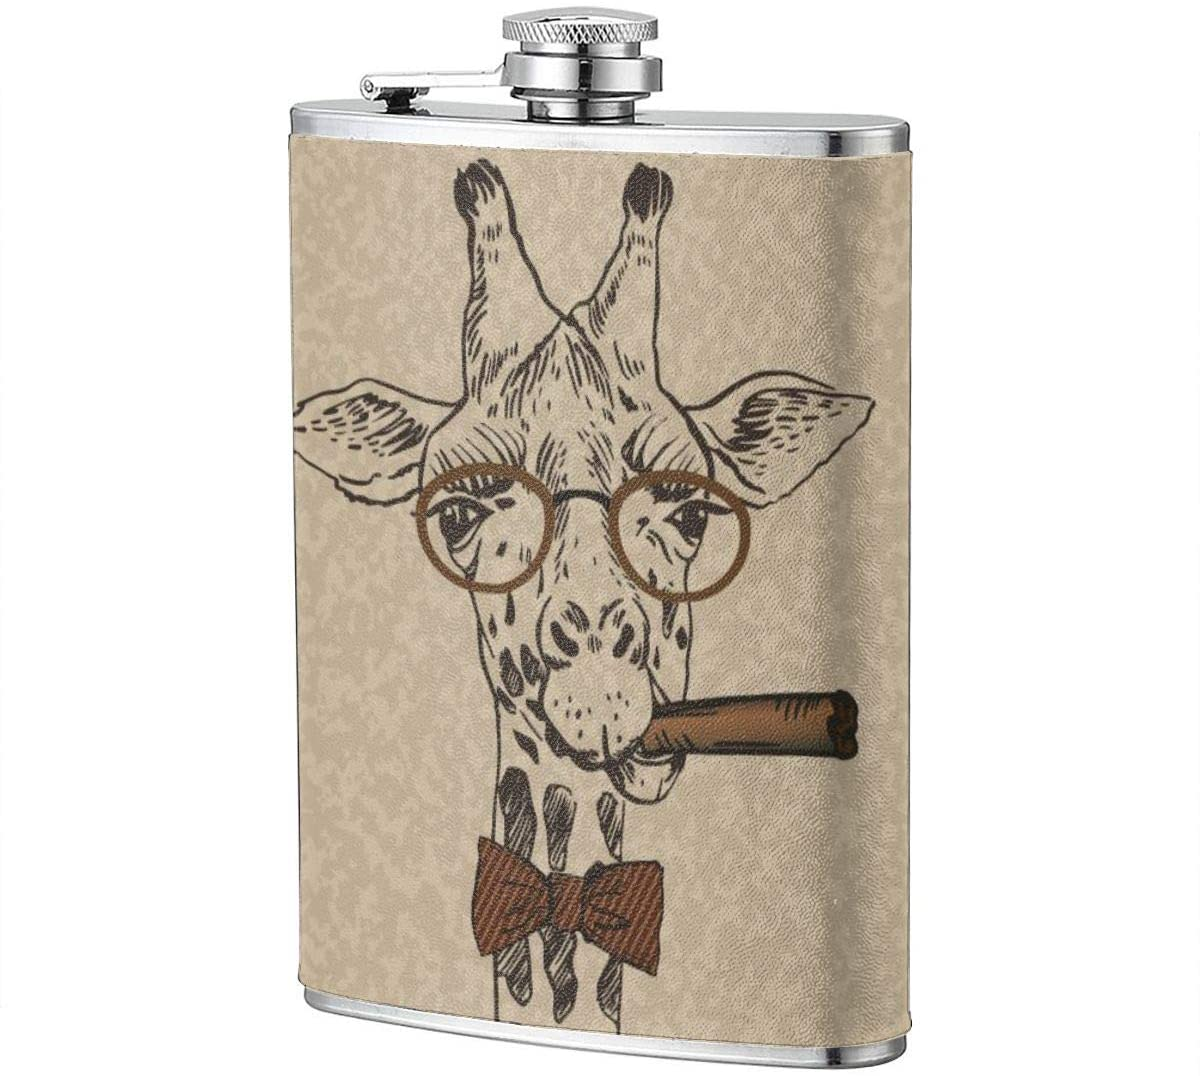 Cool Guy Retro Giraffe Portable 8 Oz Stainless Steel Leak-Proof Hip Flask For Whiskey With Leather Wrap Travel Camping Wine Pot Flagon For Men Women